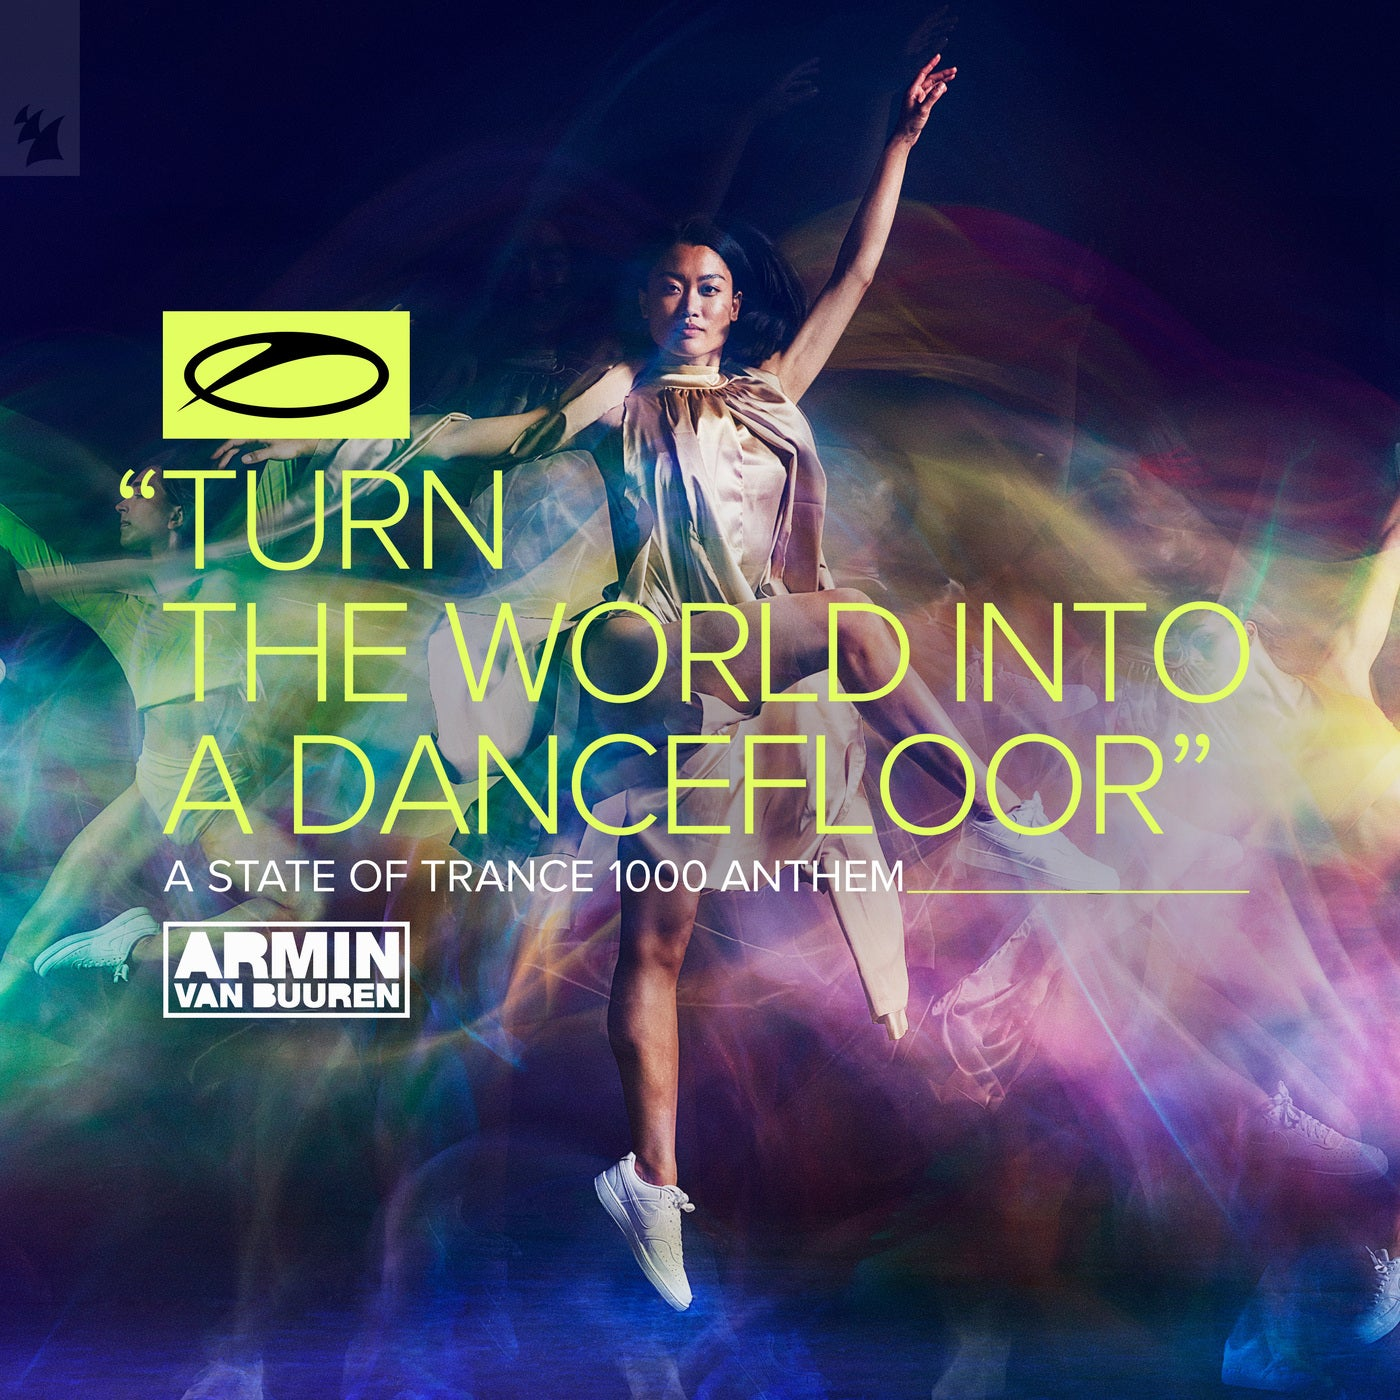 Turn The World Into A Dancefloor (ASOT 1000 Anthem) (Extended Mix)